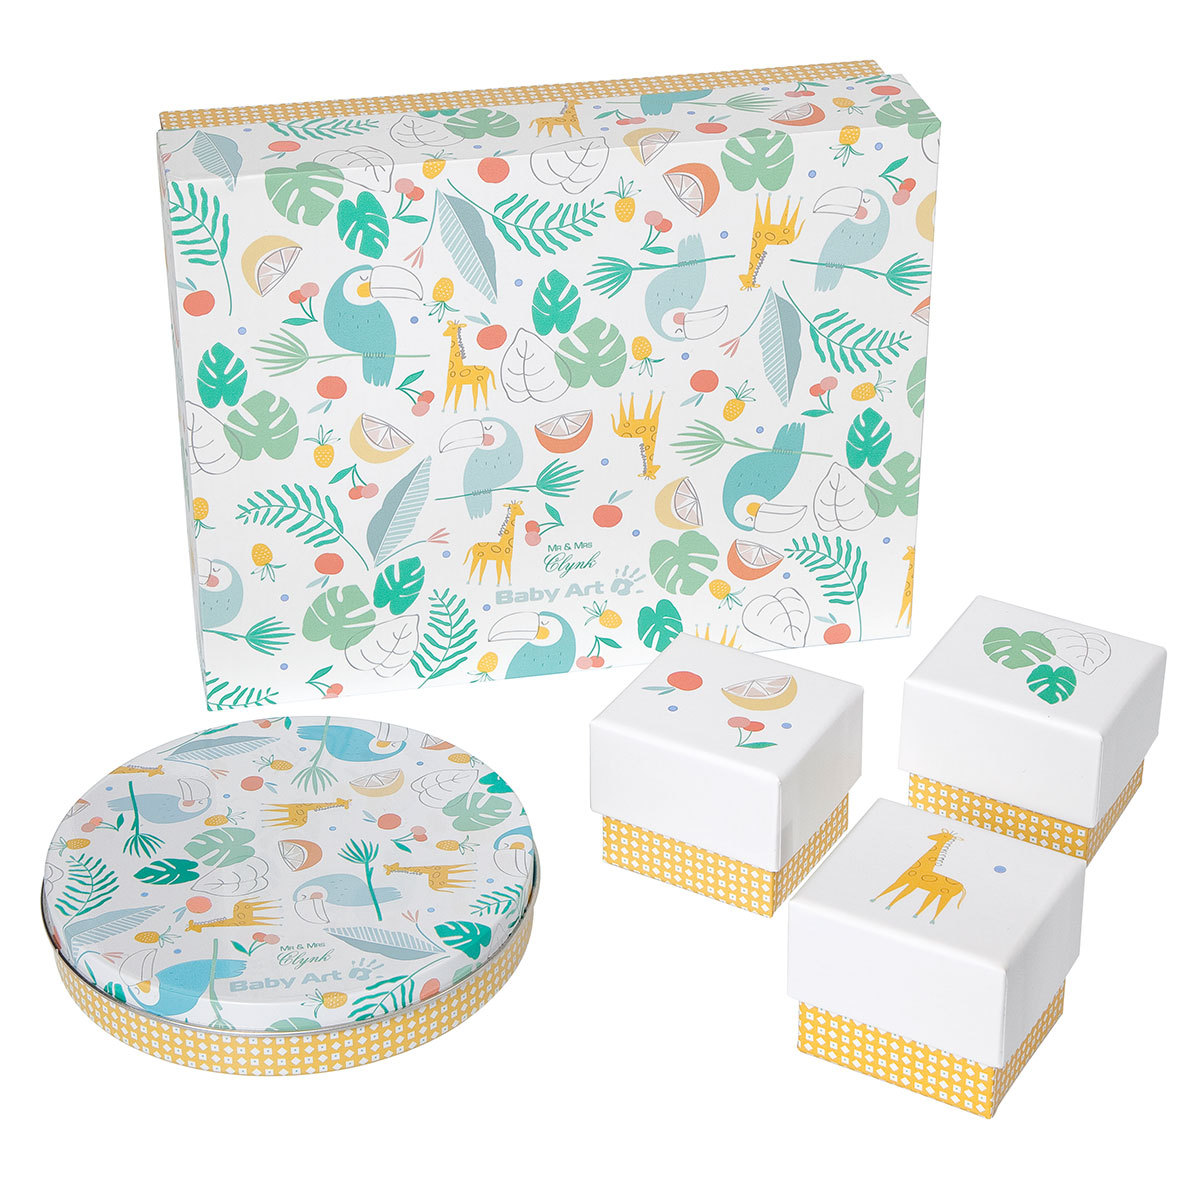 Empreinte & Moulage My Baby Gift Box Edition Llimitée - Mr & Mrs Clynk My Baby Gift Box Edition Llimitée - Mr & Mrs Clynk